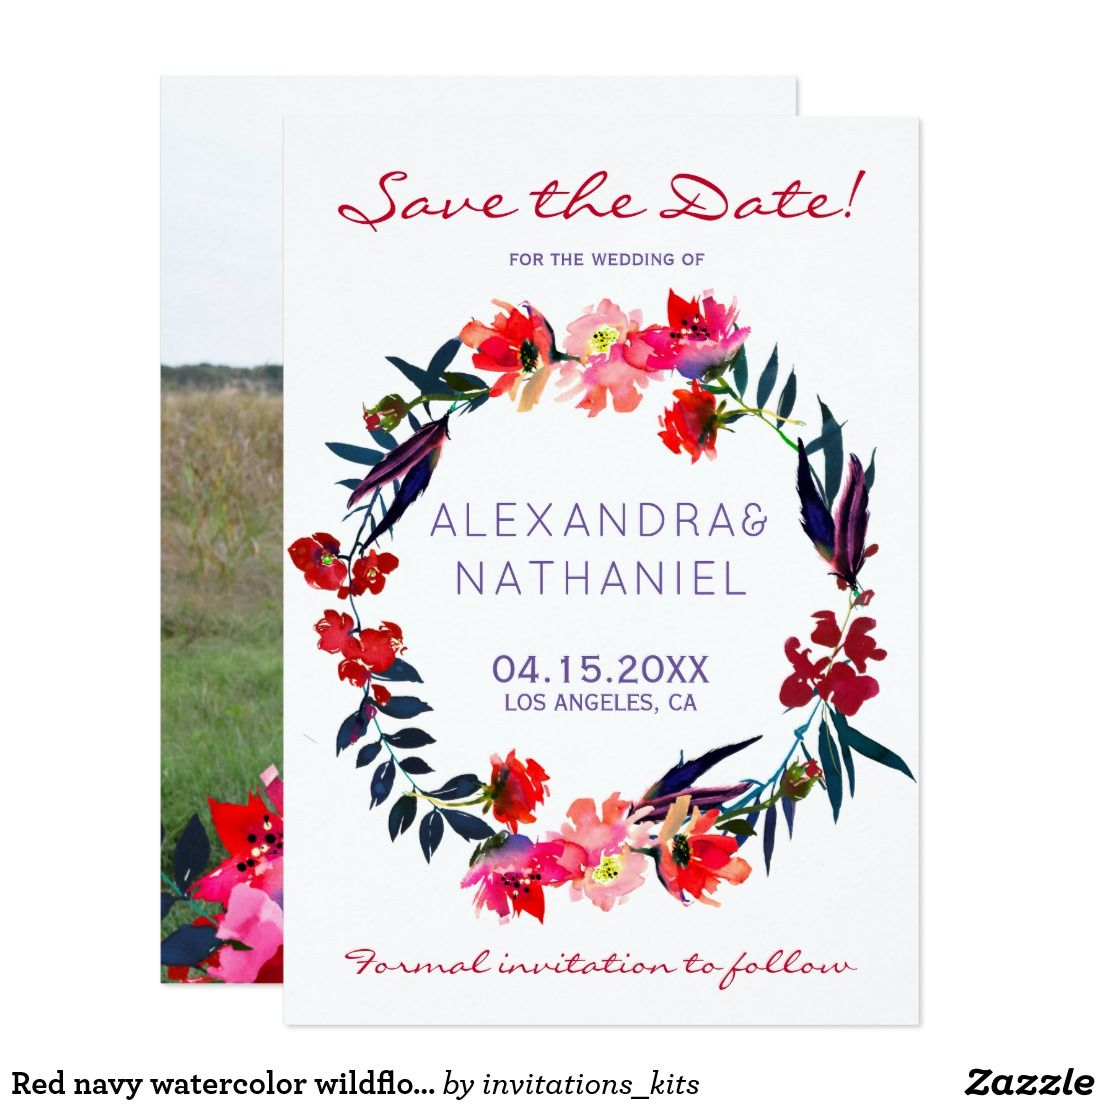 red navy watercolor wildflowers save date wedding save the date in